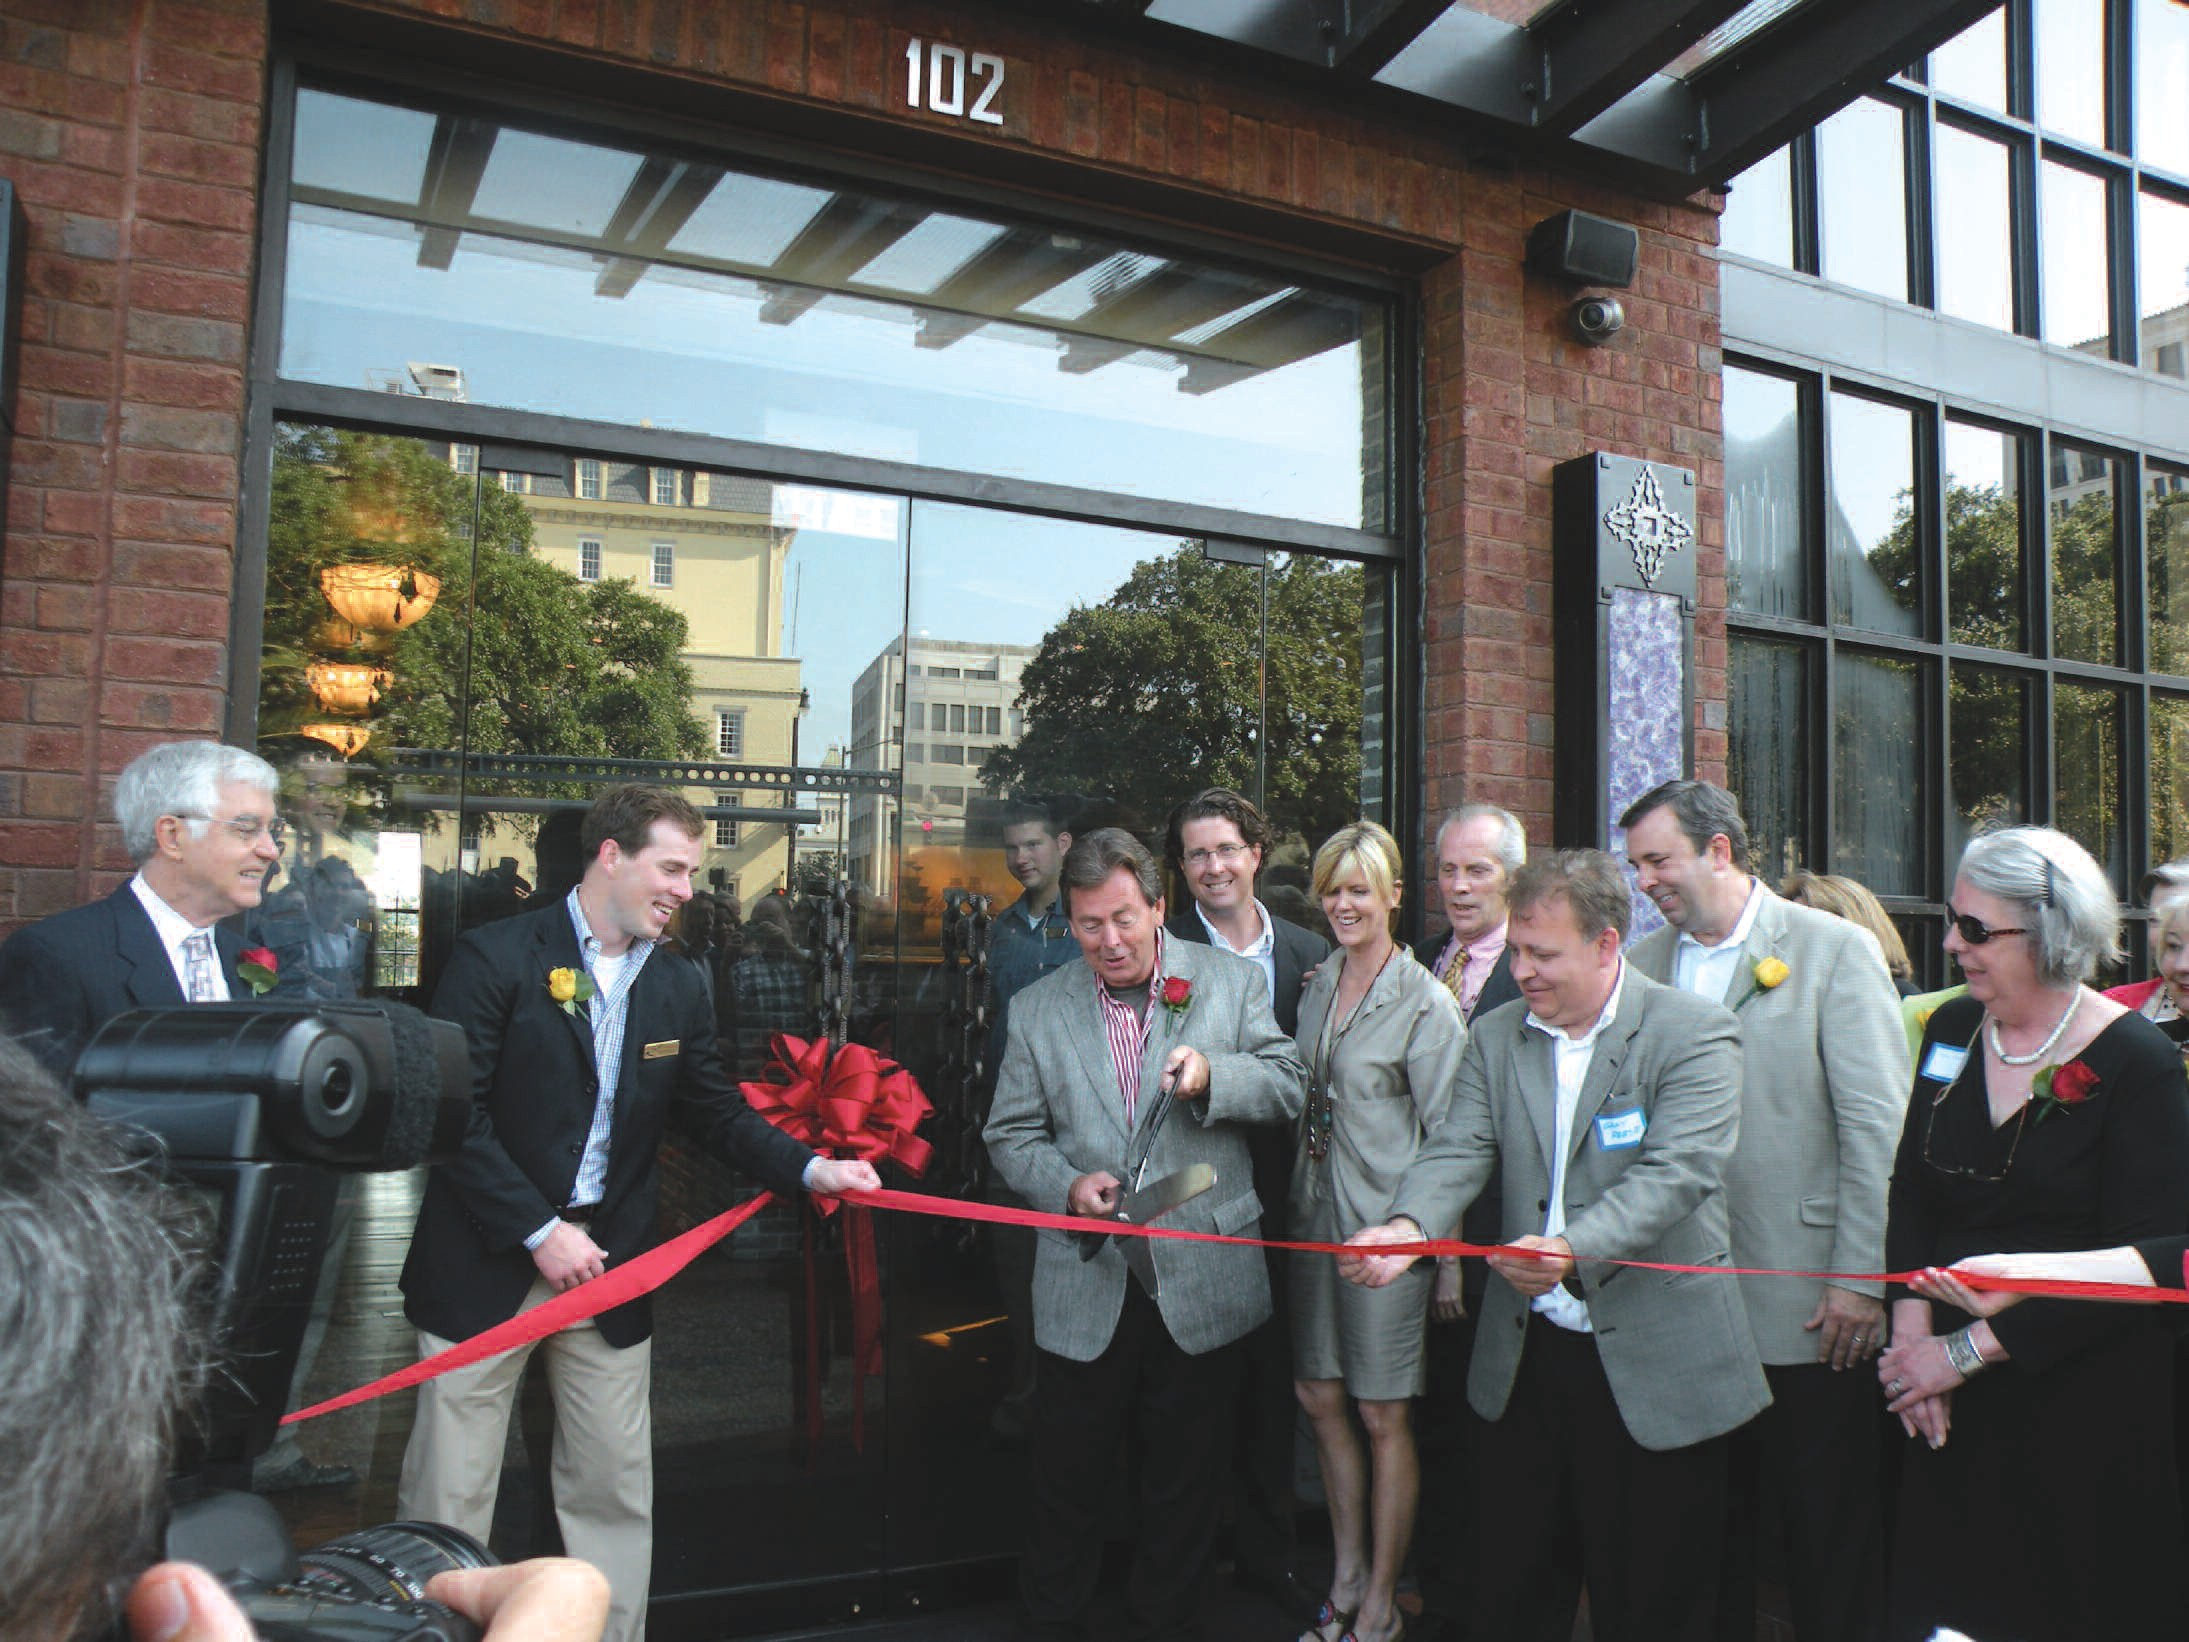 Richard Kessler(with scissors) along with local dignitaries and hotel employees take part in the ribbon cutting ceremony